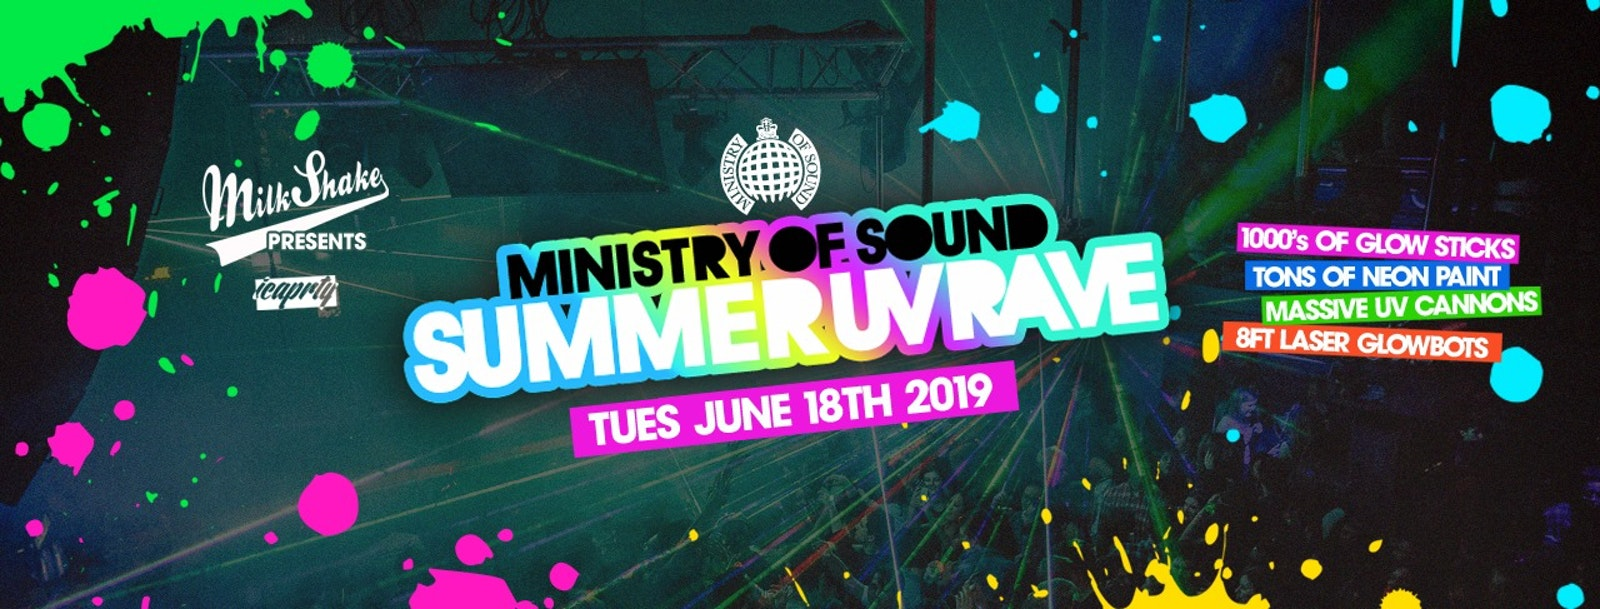 The Ministry of Sound Summer UV Rave – Milkshake | June 18th 2019